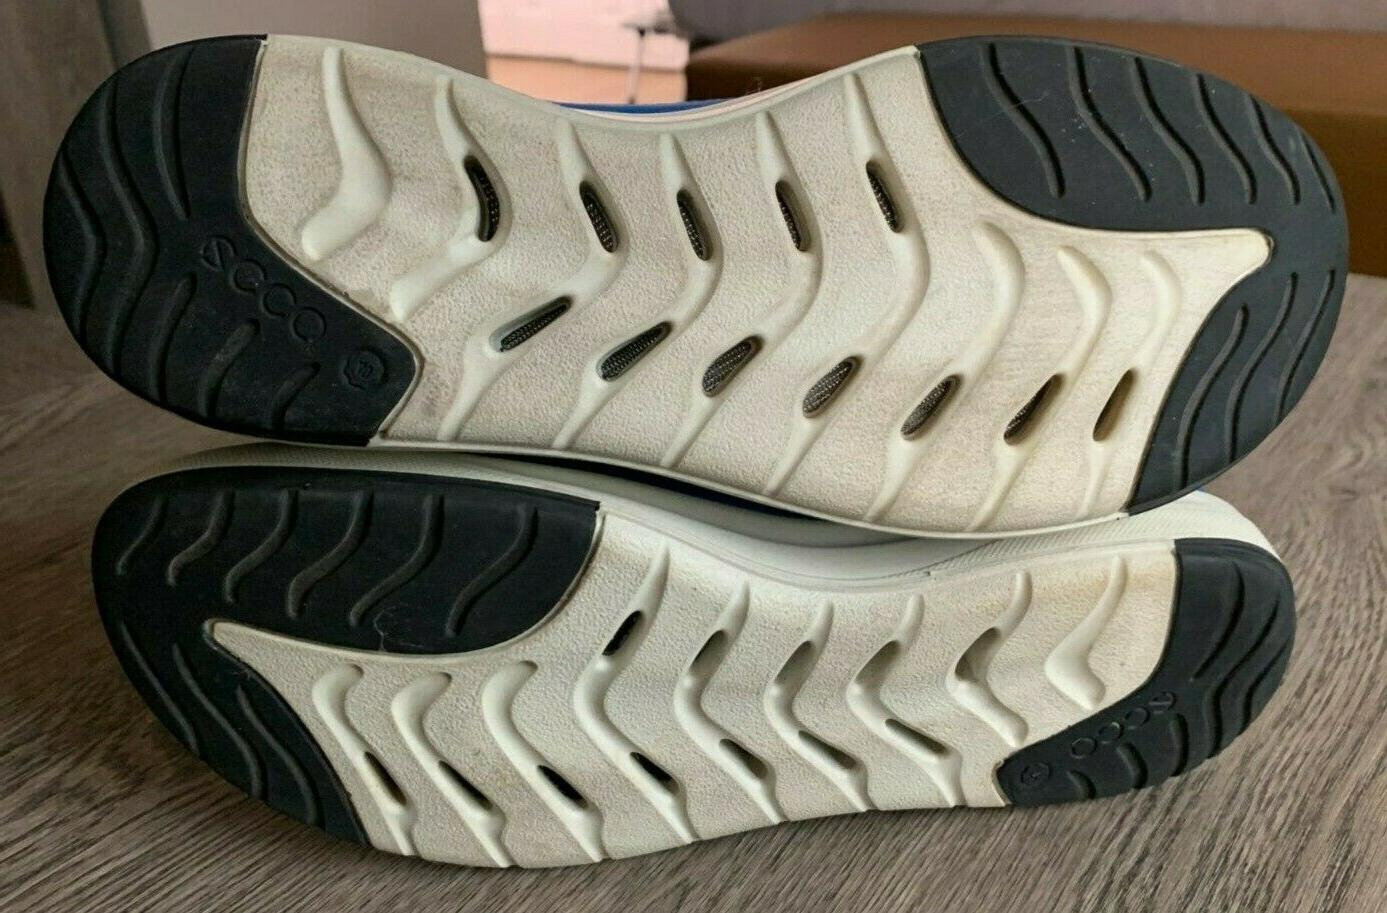 ECCO Water Shoes Blue Good Condition